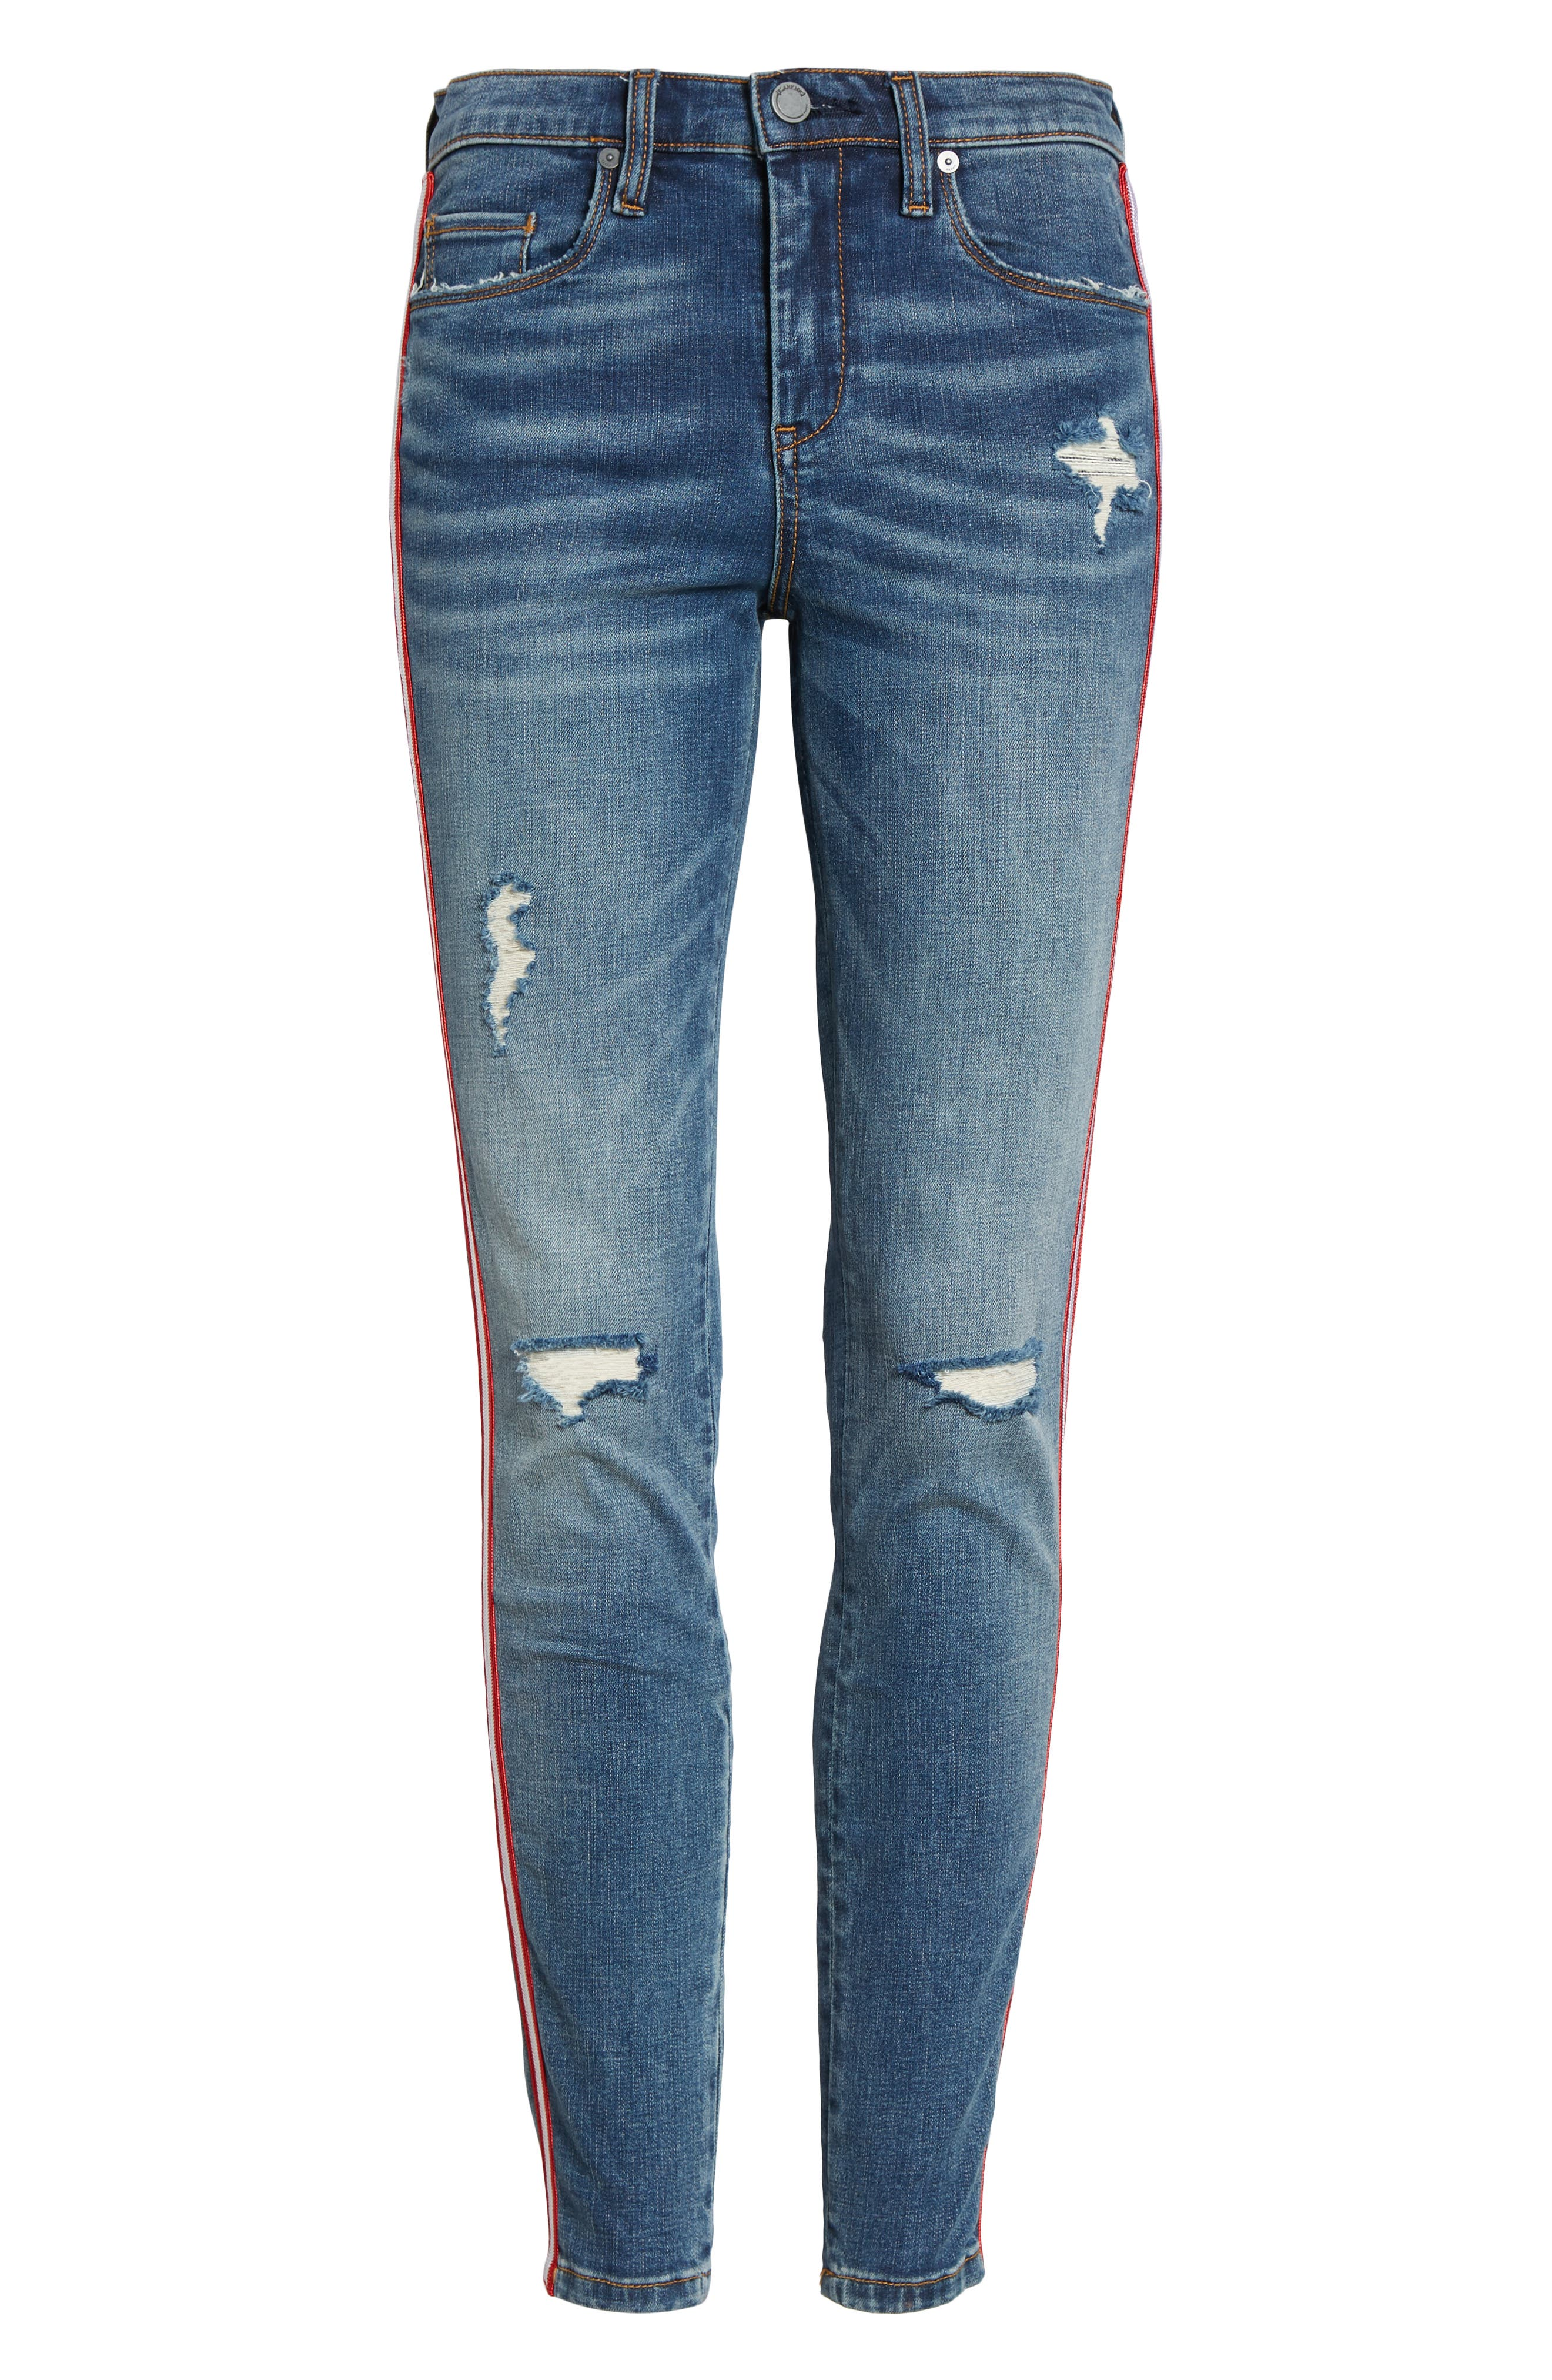 BLANKNYC, Side Stripe Ripped Ankle Skinny Jeans, Alternate thumbnail 7, color, JERSEY GIRL